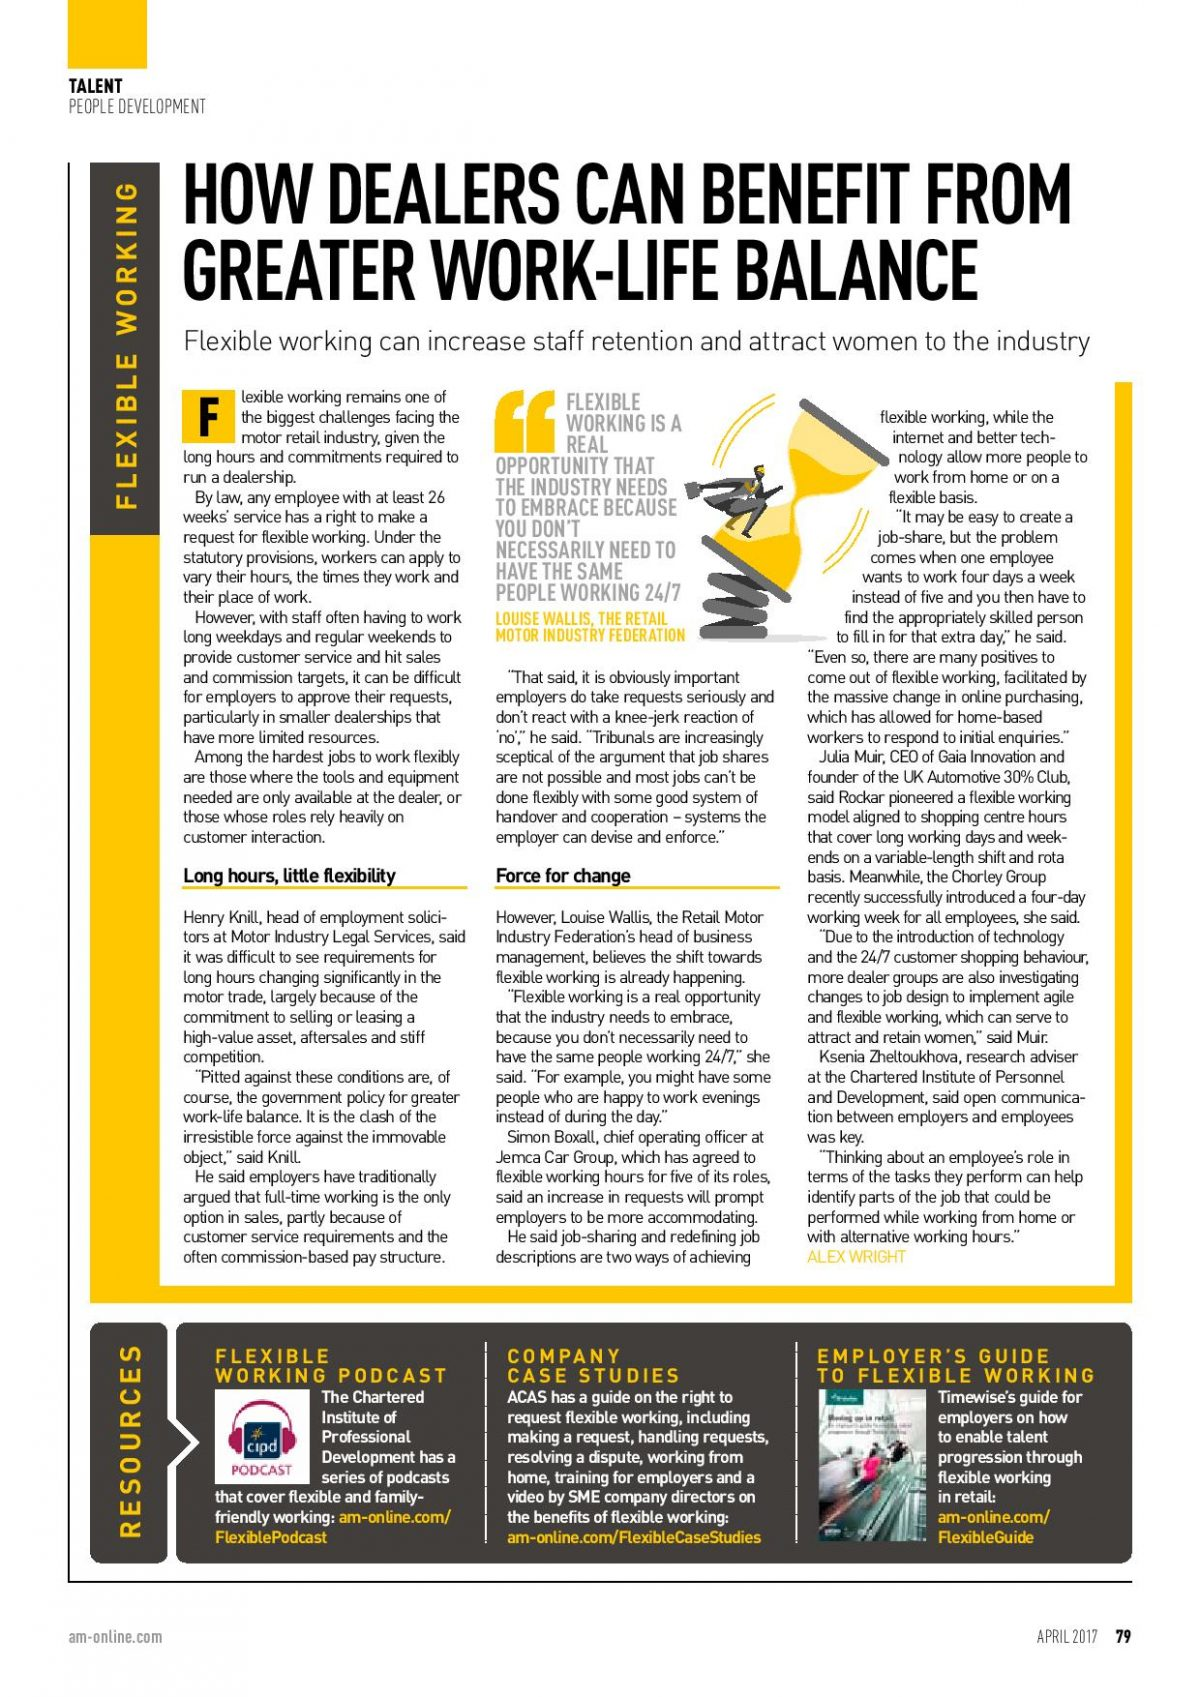 how-dealers-can-benefit-from-greater-work-life-balance-page-001